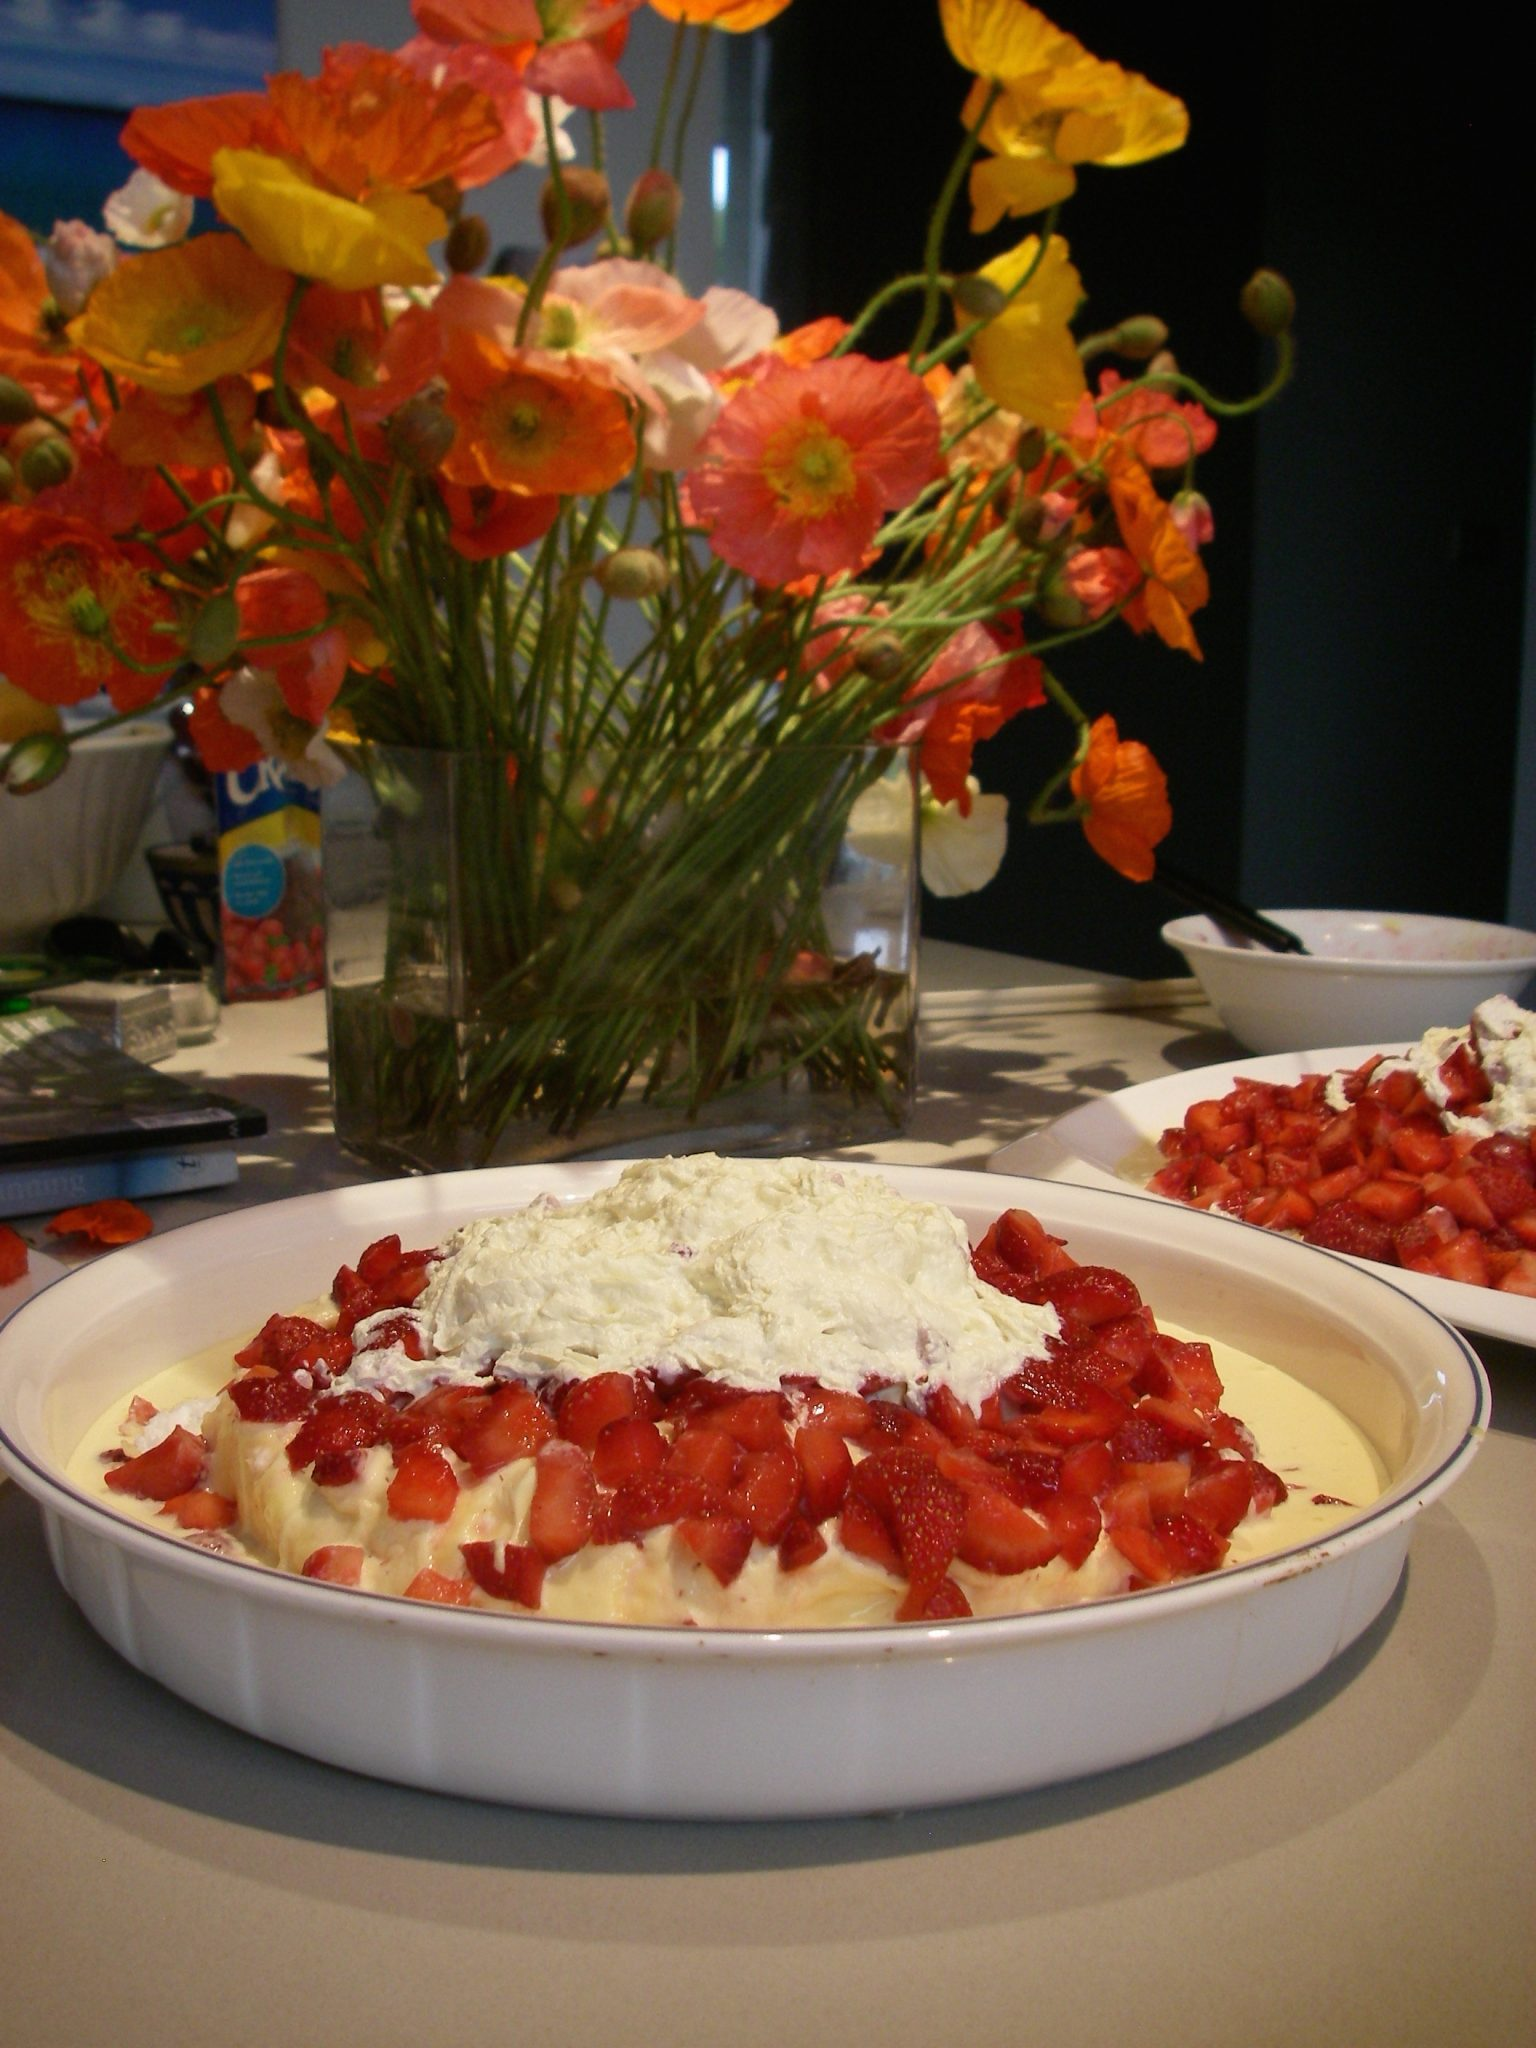 115. For Thanksgiving, we enjoyed a traditional Australian dessert called a Pavlova. It is a marangue covered with double cream and fruit with whipped cream on top! It was extraordinar